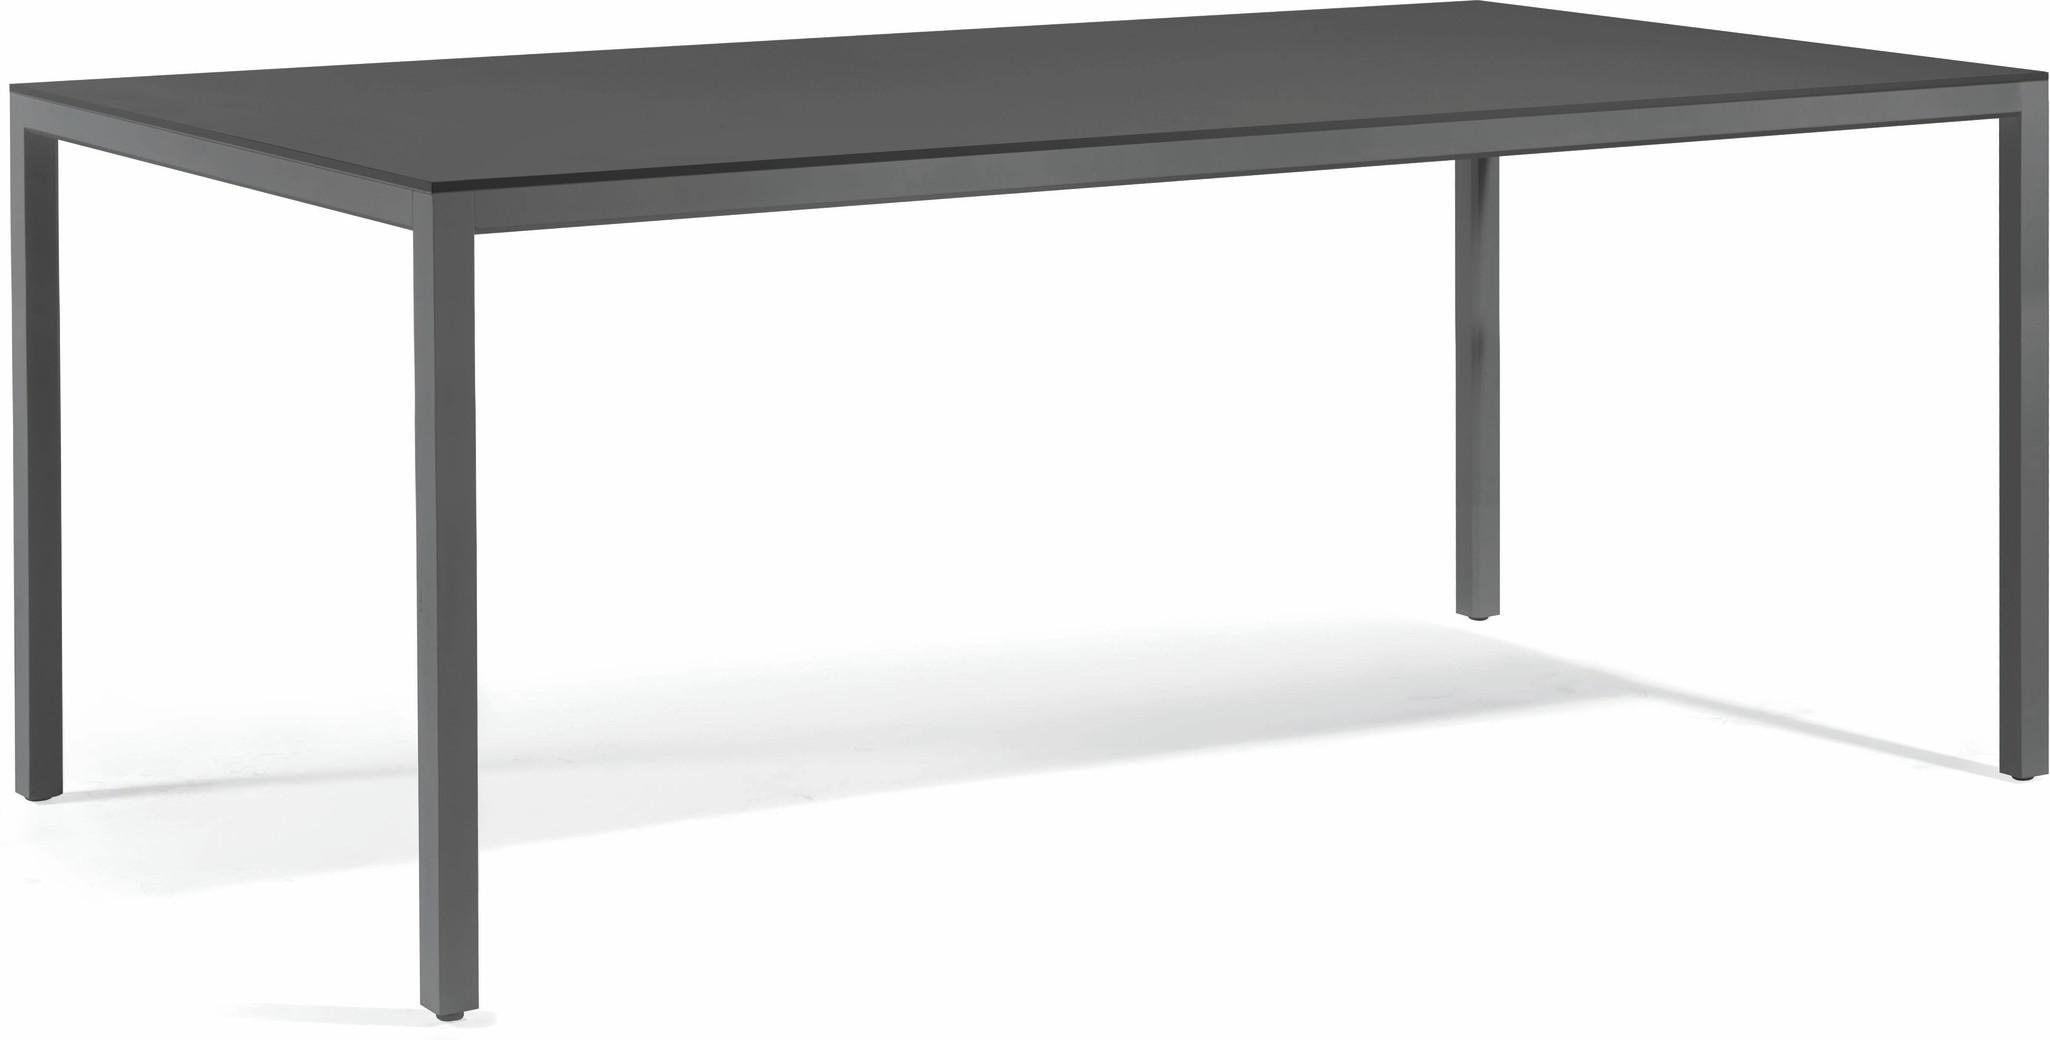 Quarto Dining table - lava - GLS 270